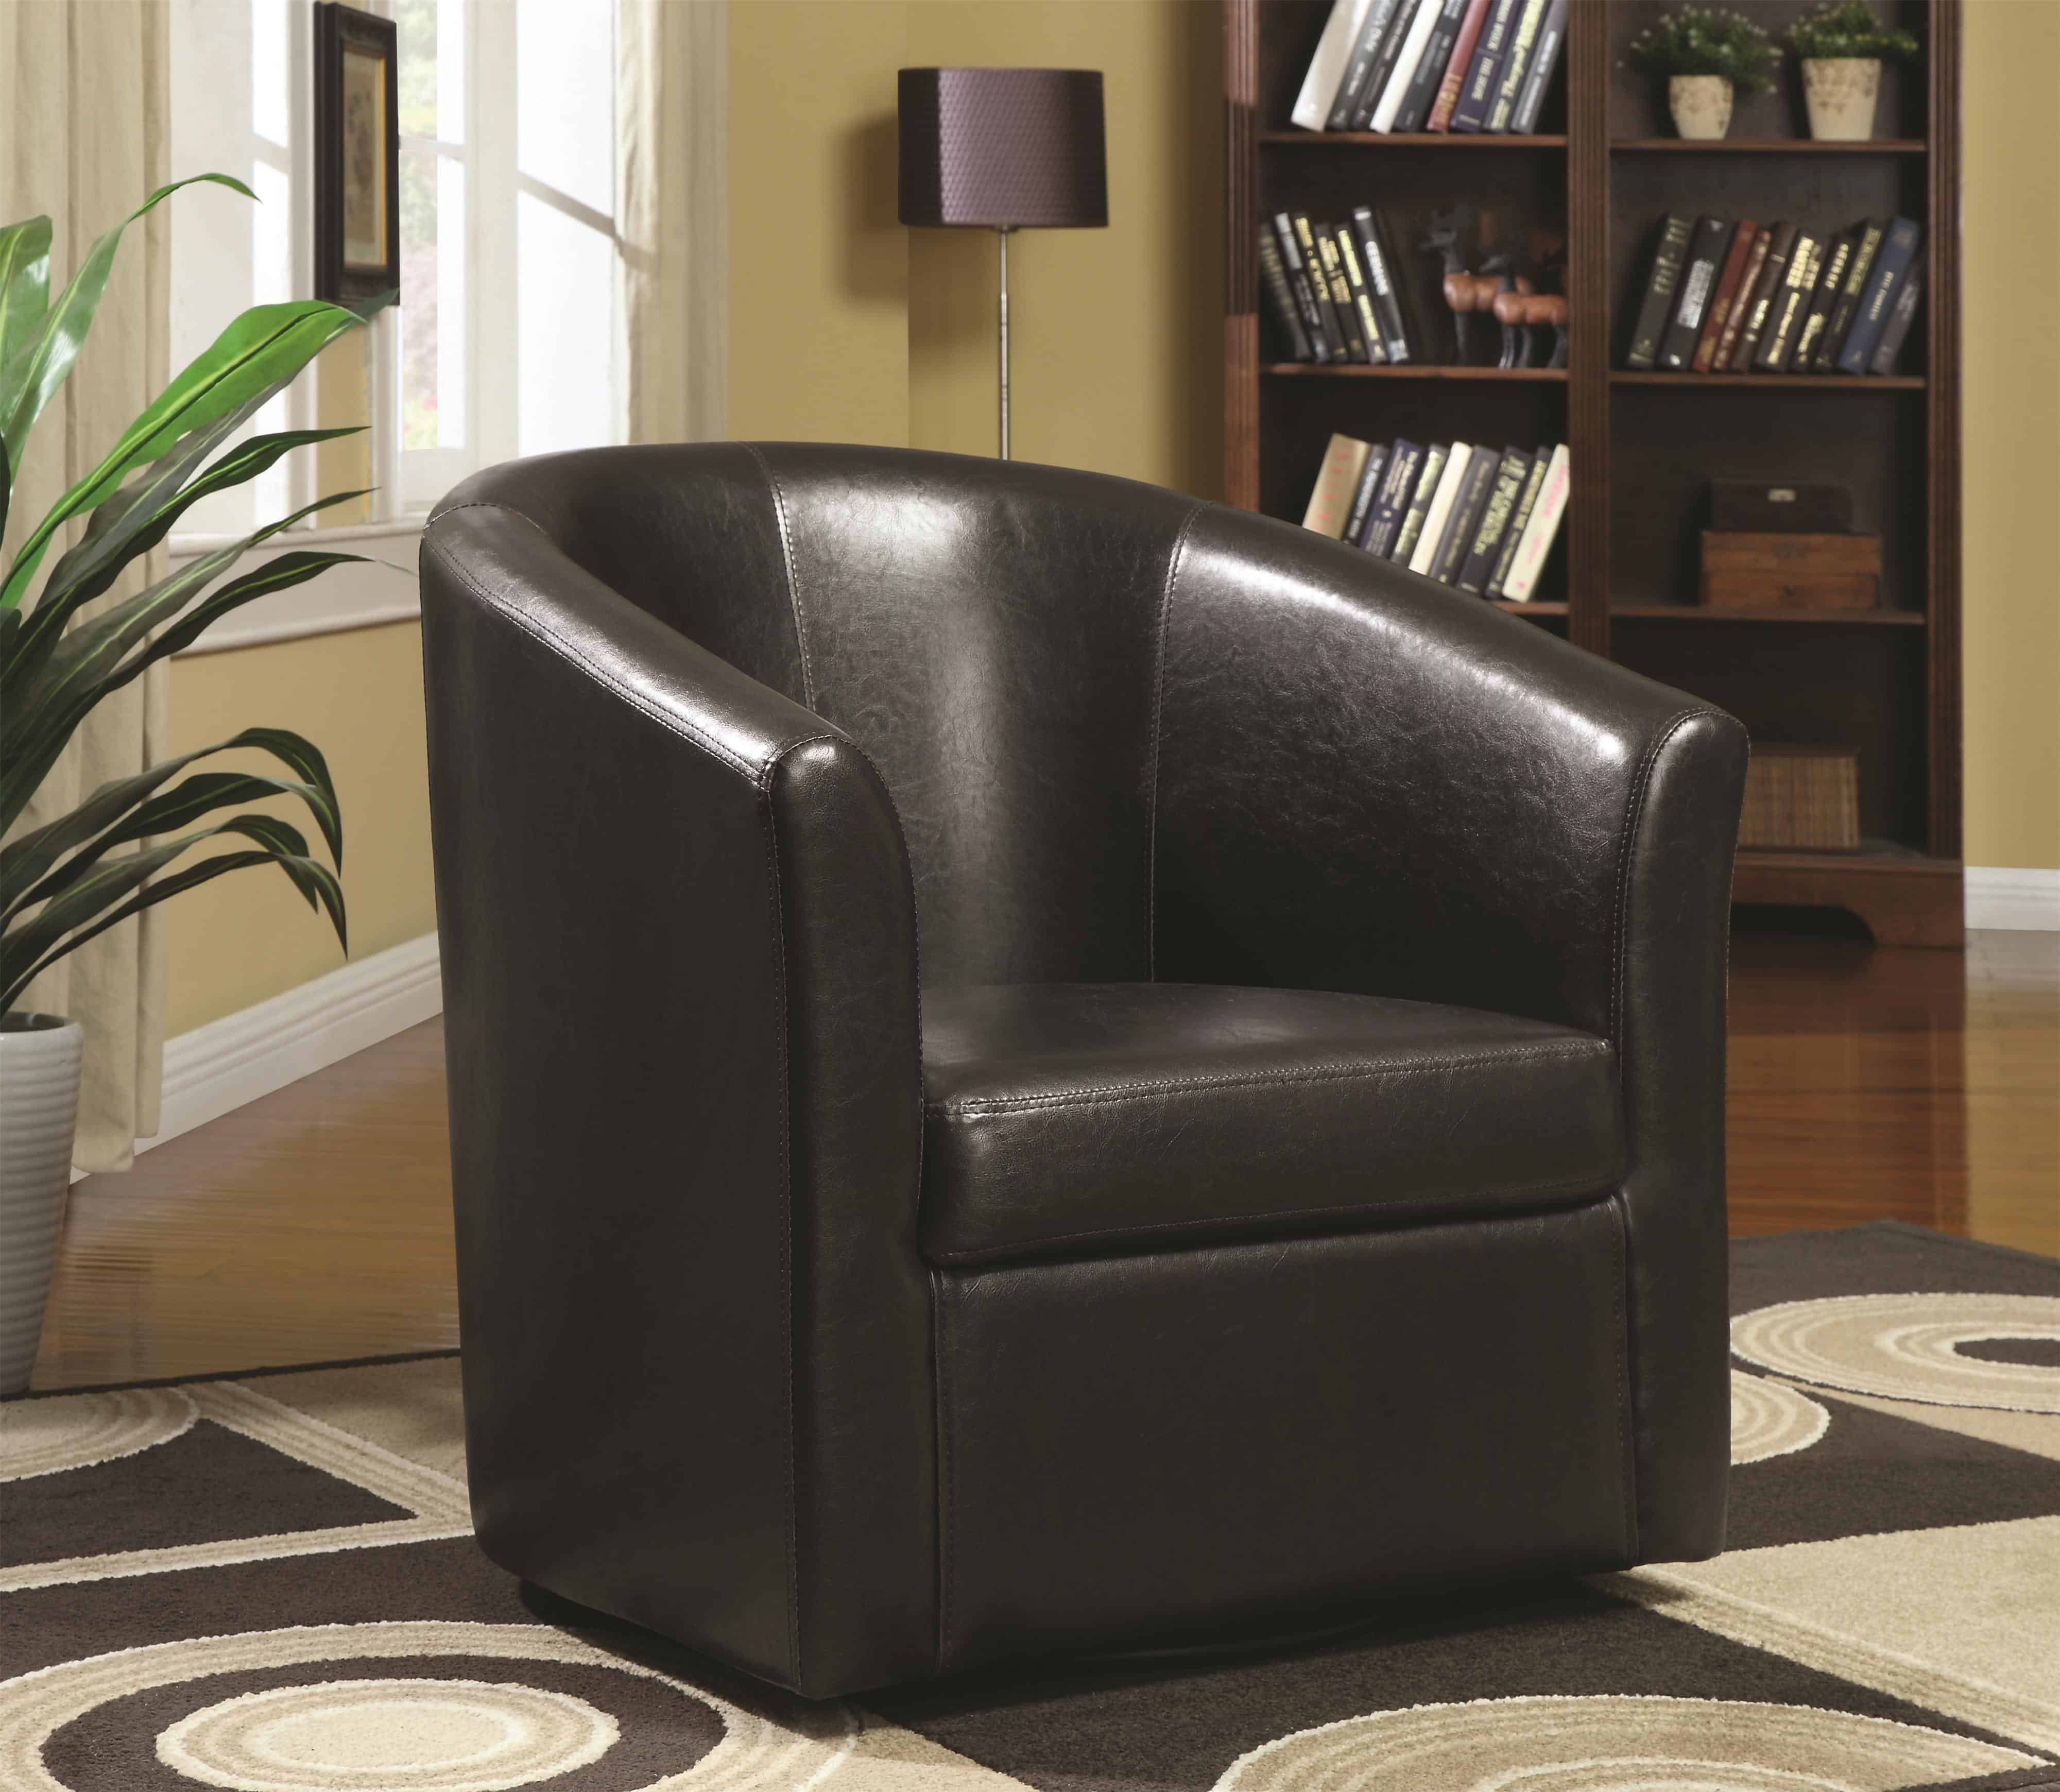 Contemporary Styled Accent Swivel Chair in Brown Vinyl Upholstery